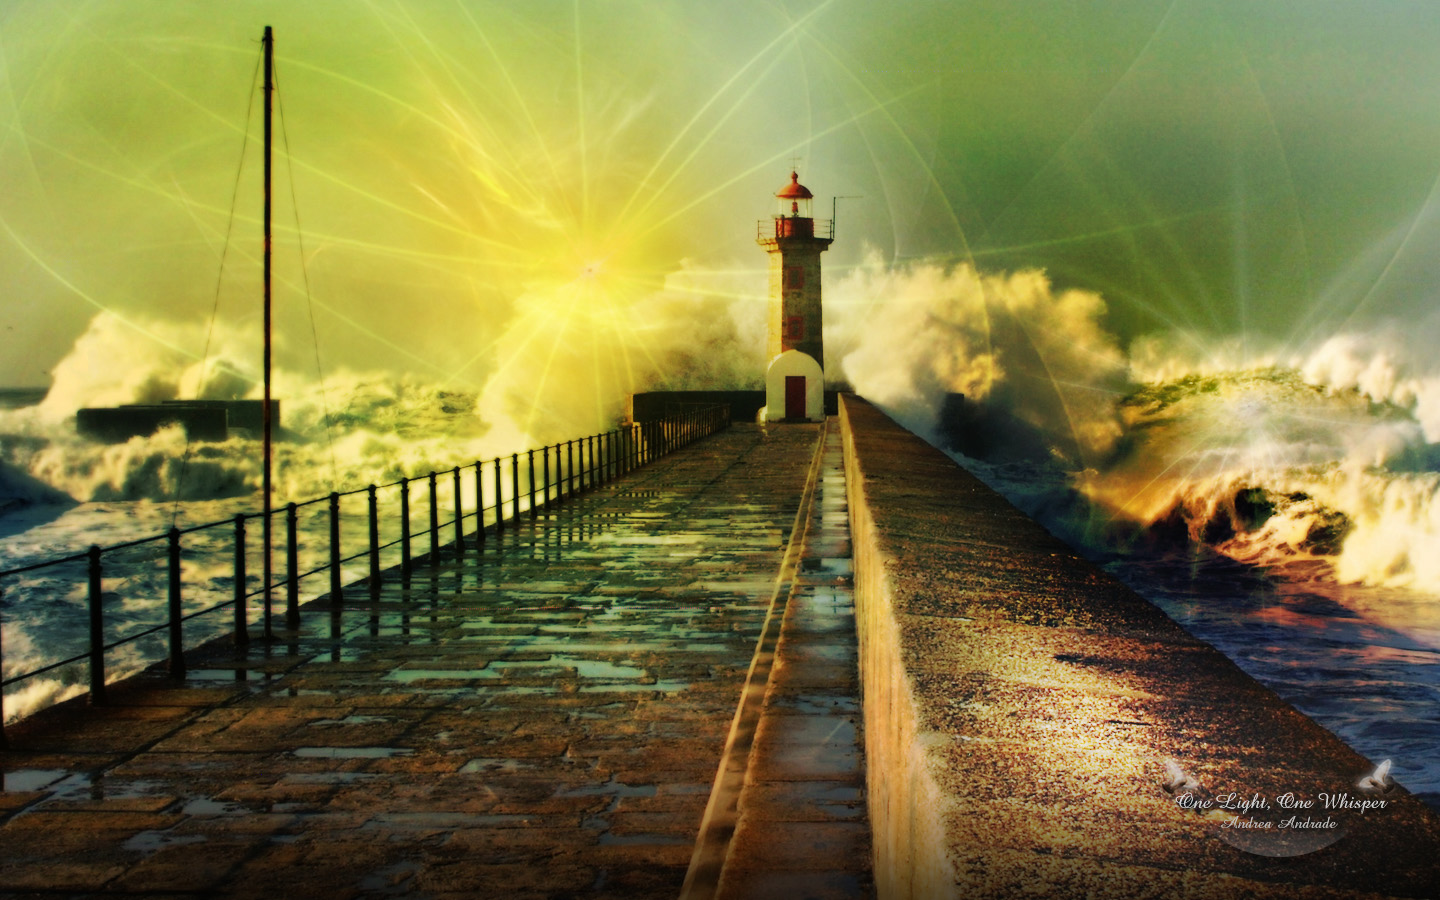 HDR Design wallpapers 86607